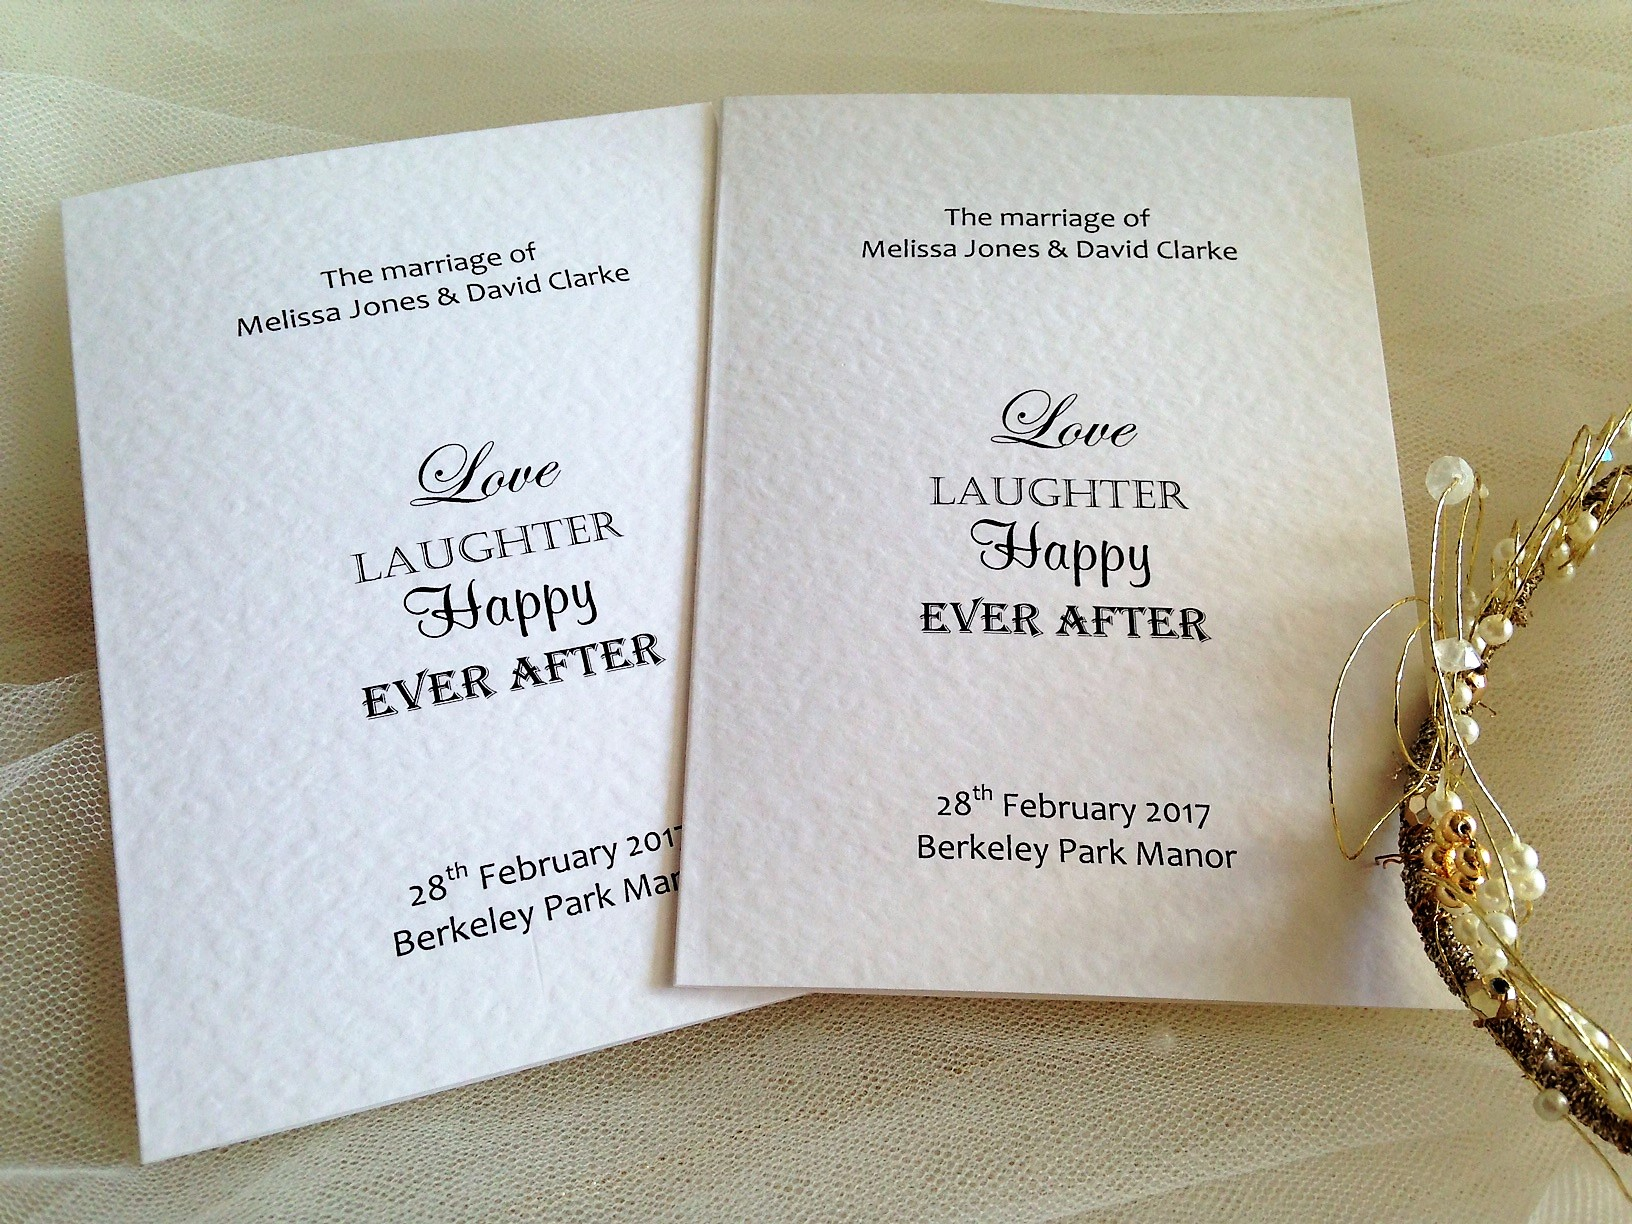 Small Love Laughter Order of Service Books